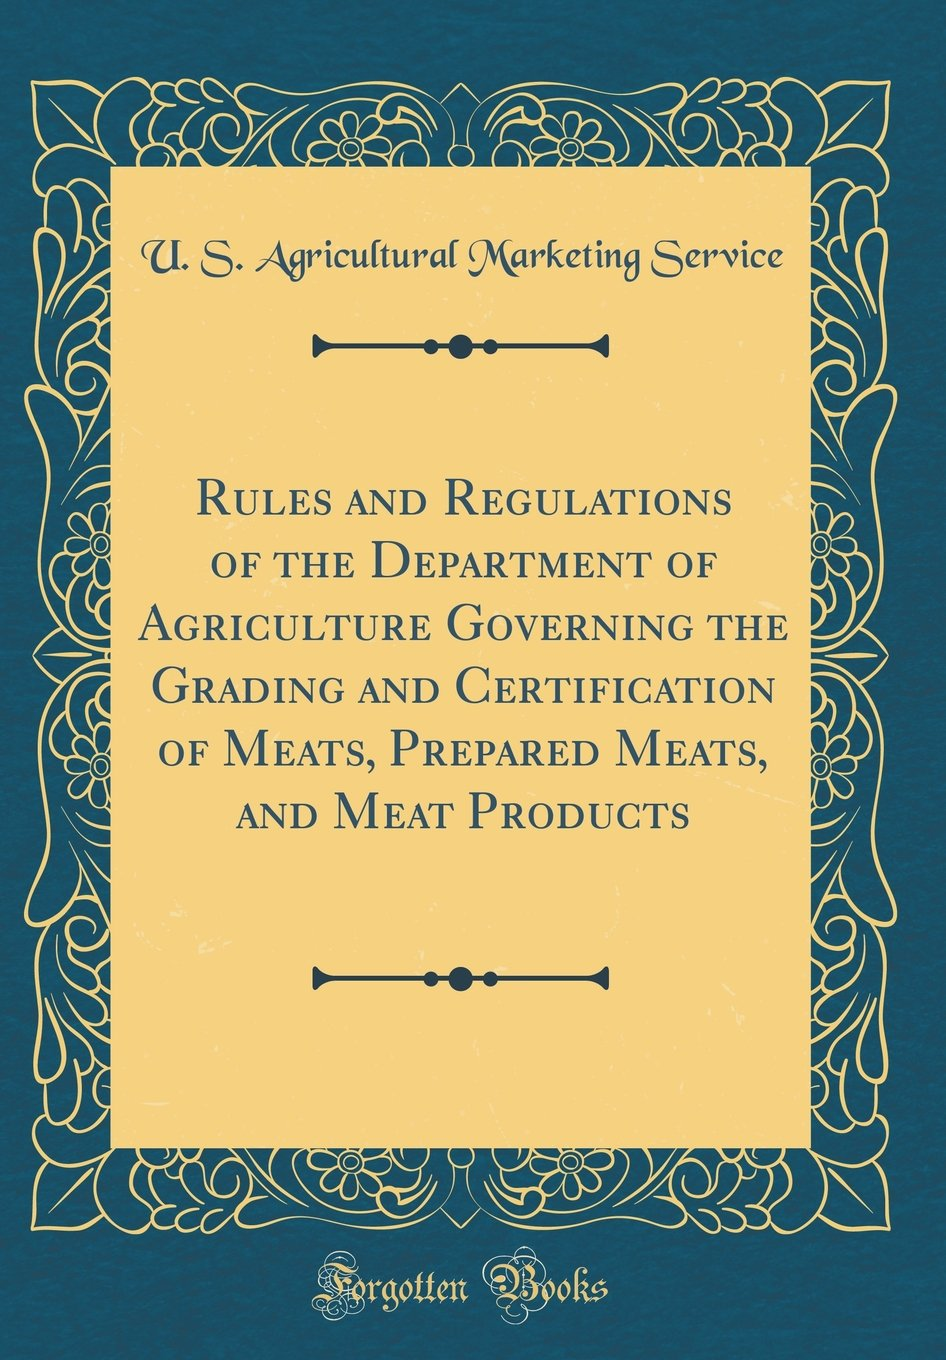 Read Online Rules and Regulations of the Department of Agriculture Governing the Grading and Certification of Meats, Prepared Meats, and Meat Products (Classic Reprint) pdf epub